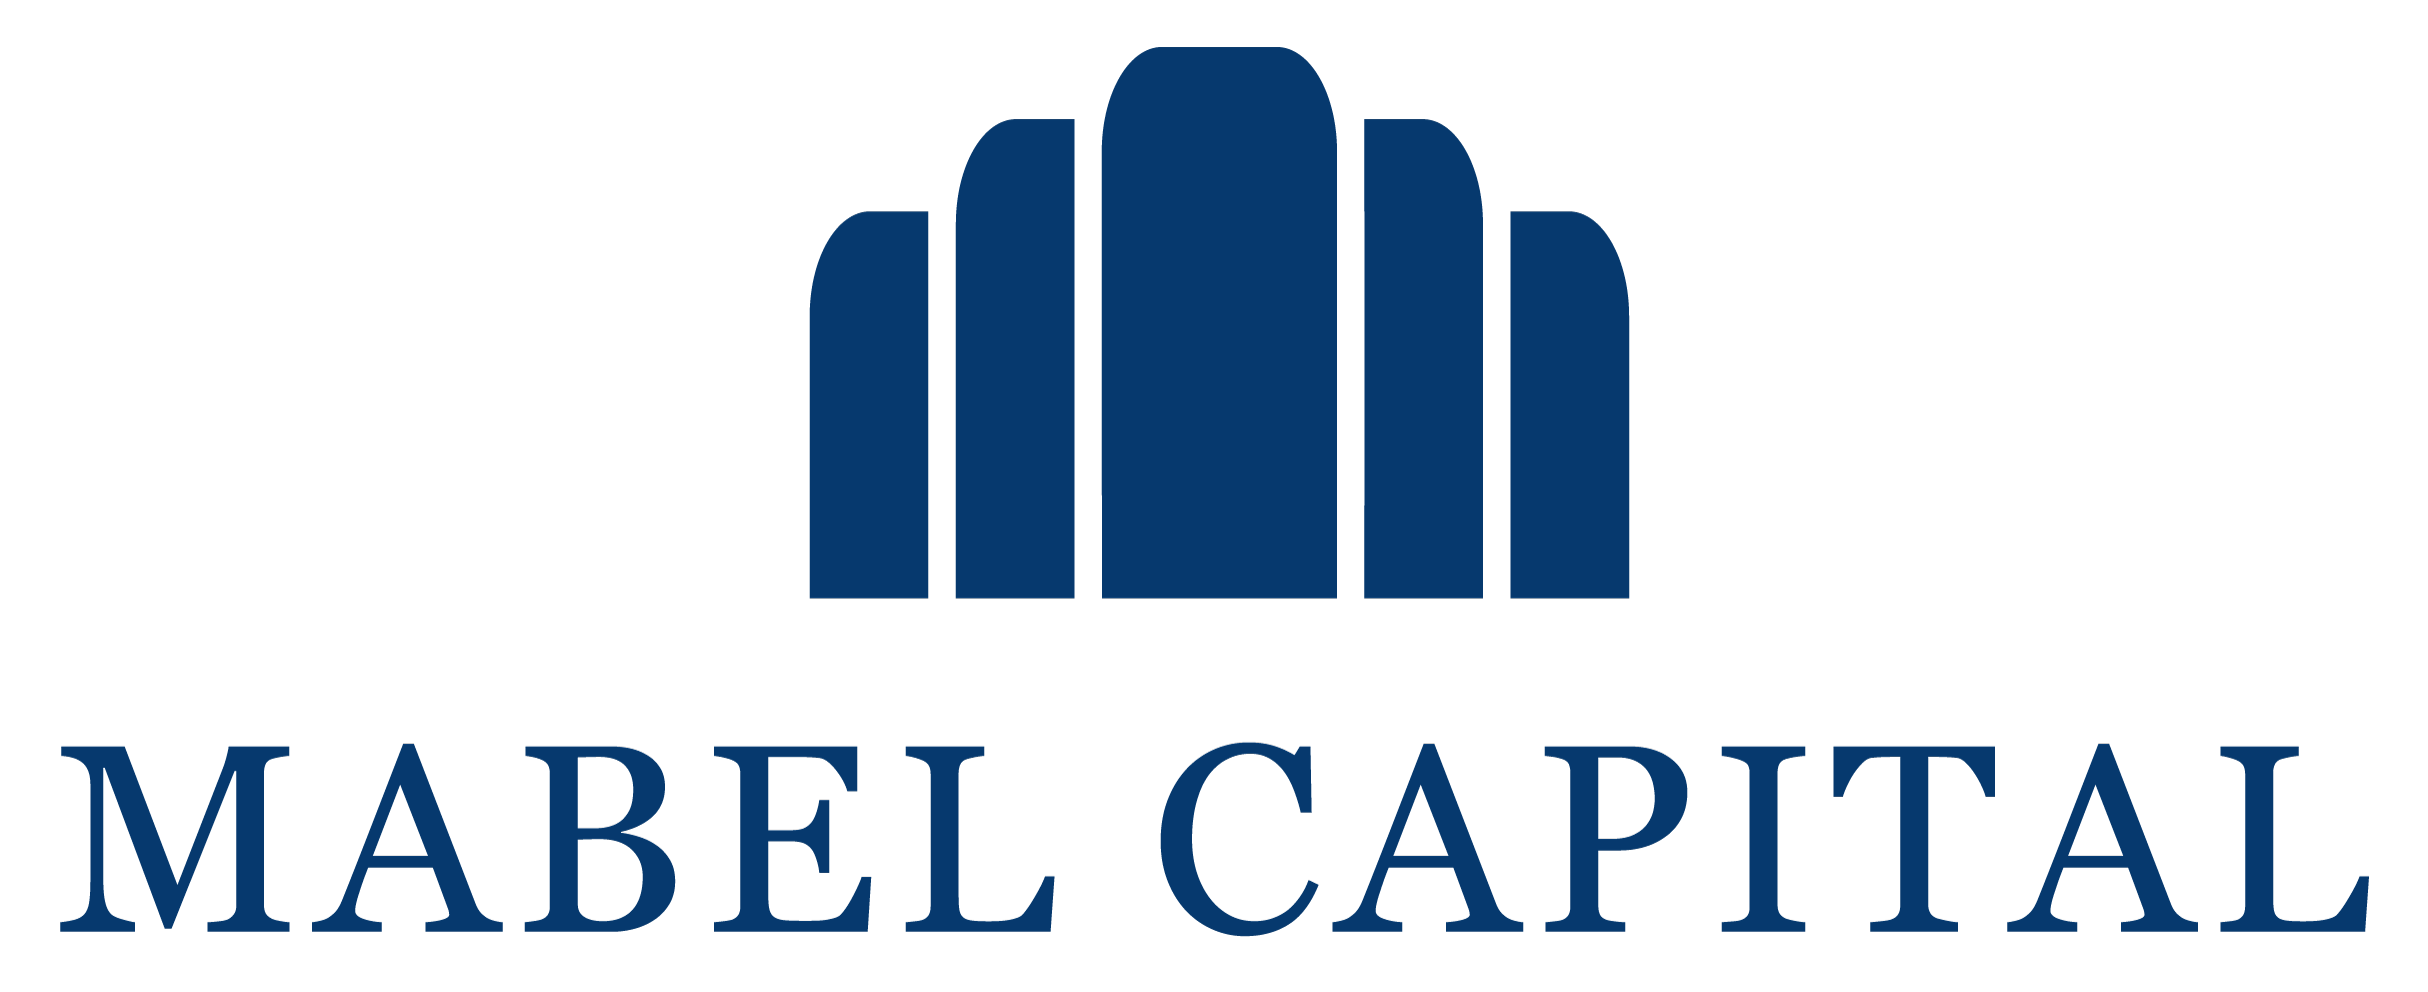 Mabel Capital